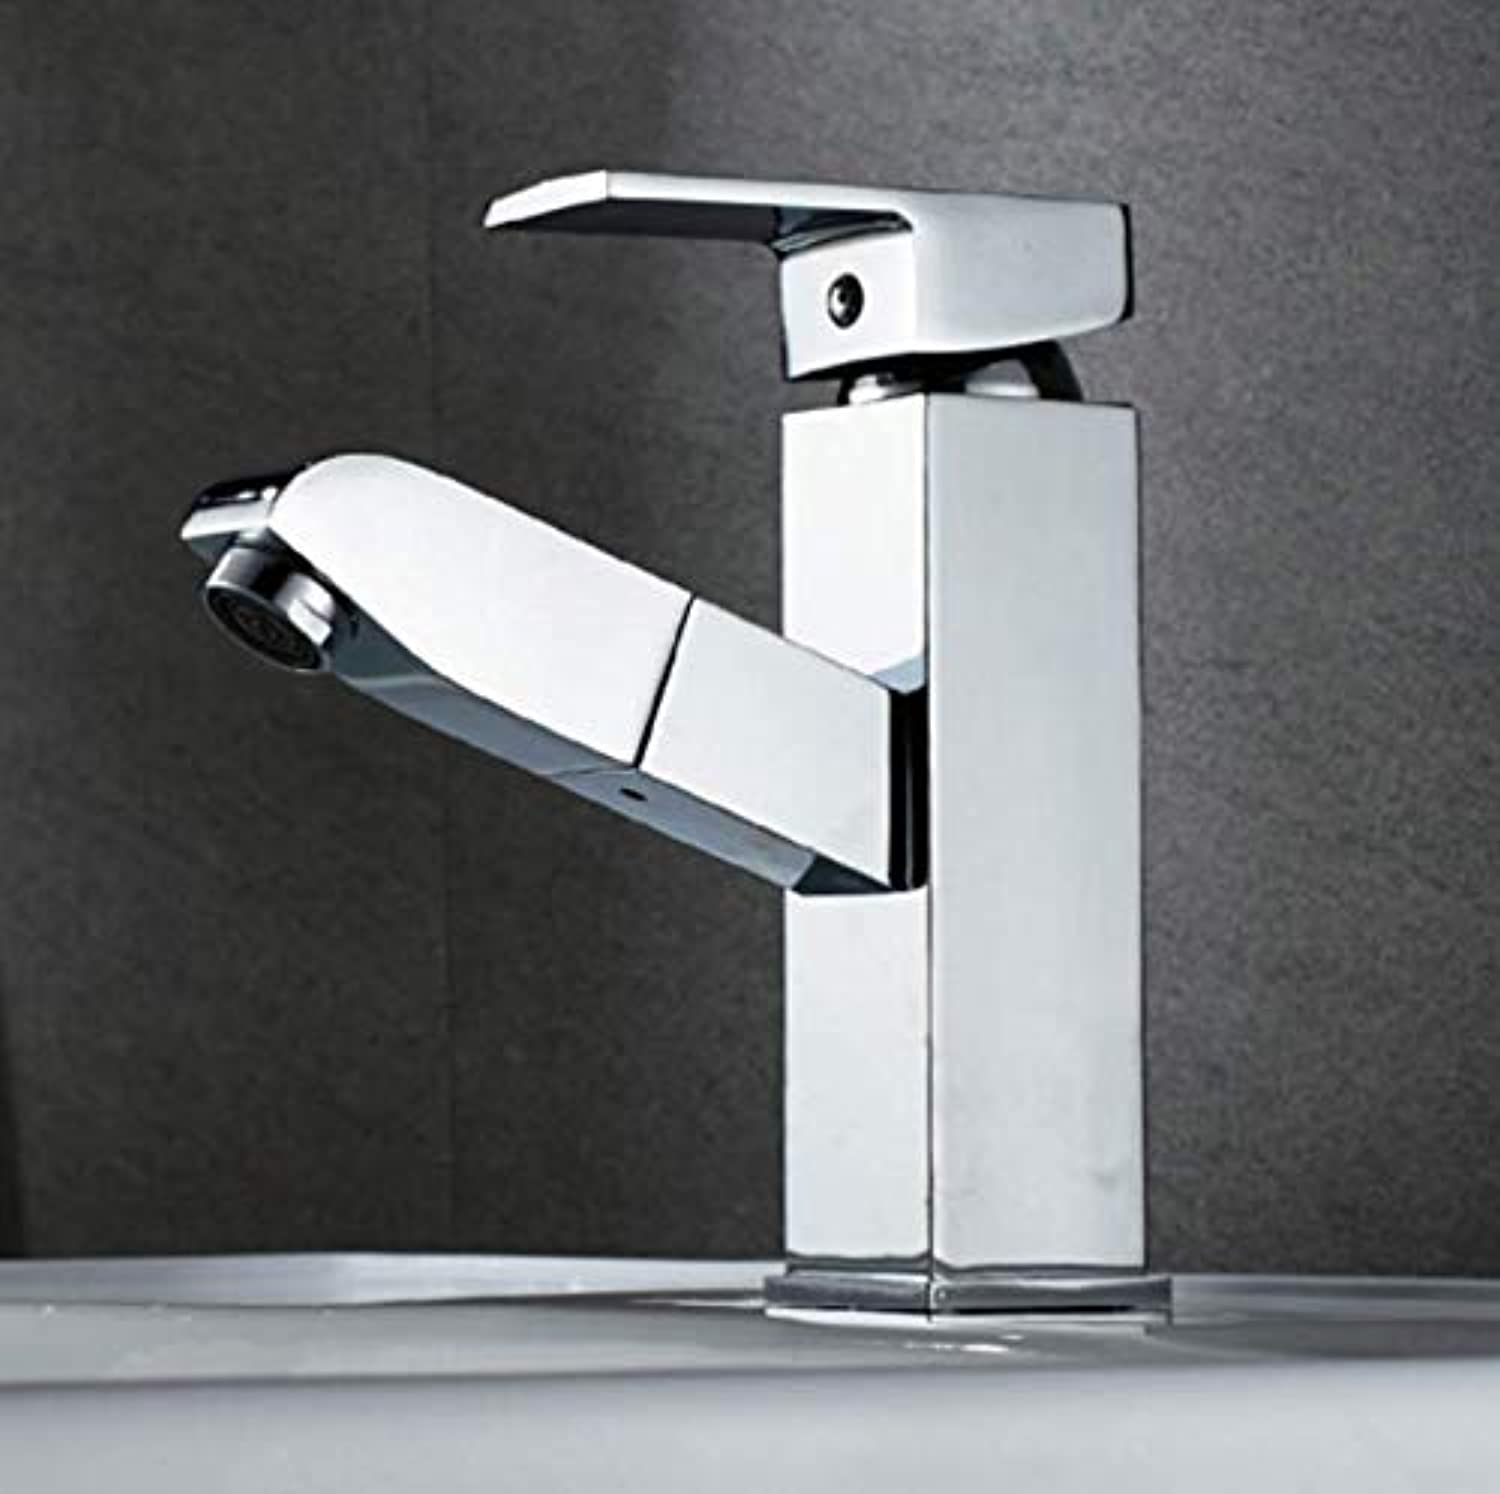 Sink Faucet Brass Chrome Pull Faucet Hot and Cold Bathroom Lavatory Single Cold Telescopic Washbasin Faucet